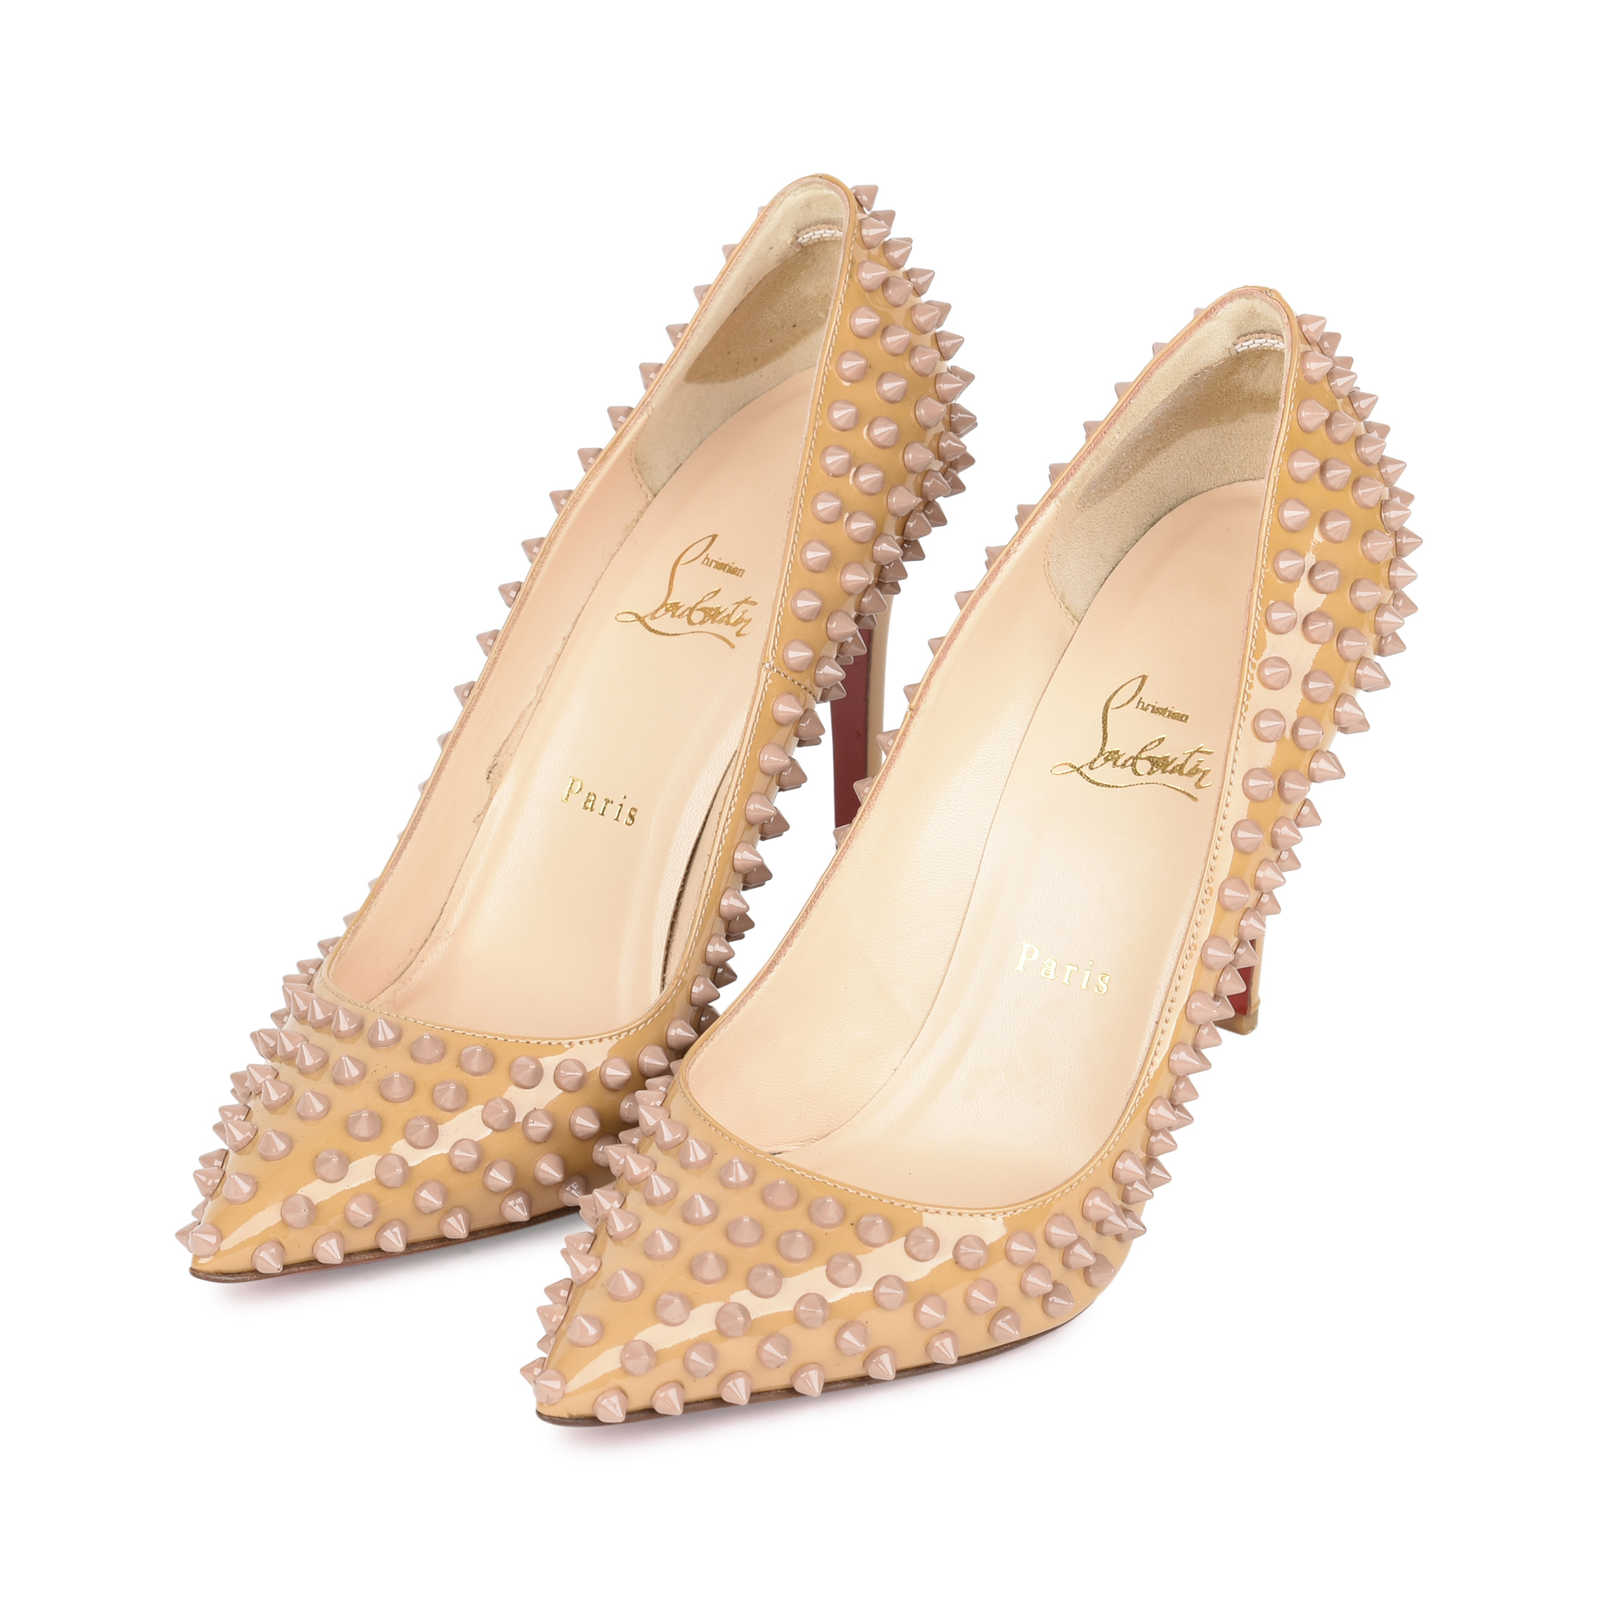 ... Authentic Pre Owned Christian Louboutin Pigalle Spike Pumps (PSS-532- 00002) - 15b4c48e76